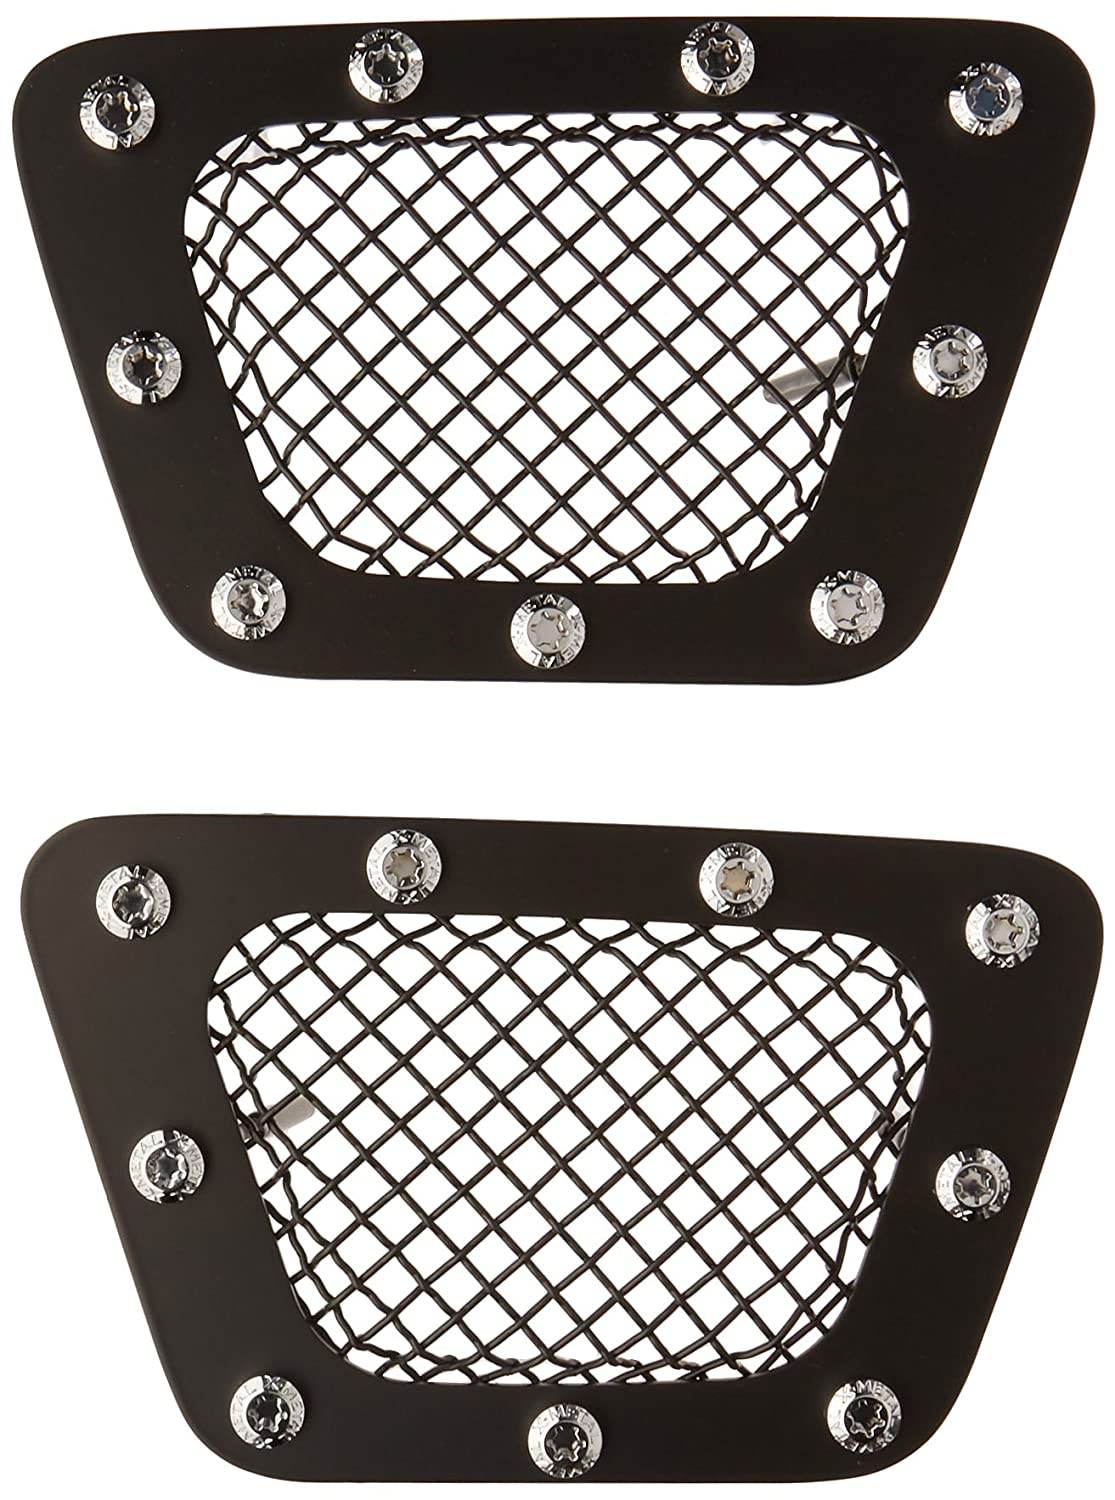 TRex Grilles 6720511 Small Mesh Steel Black Finish XMetal Bumper Grille Overlay for Chevrolet Avalanche T REX